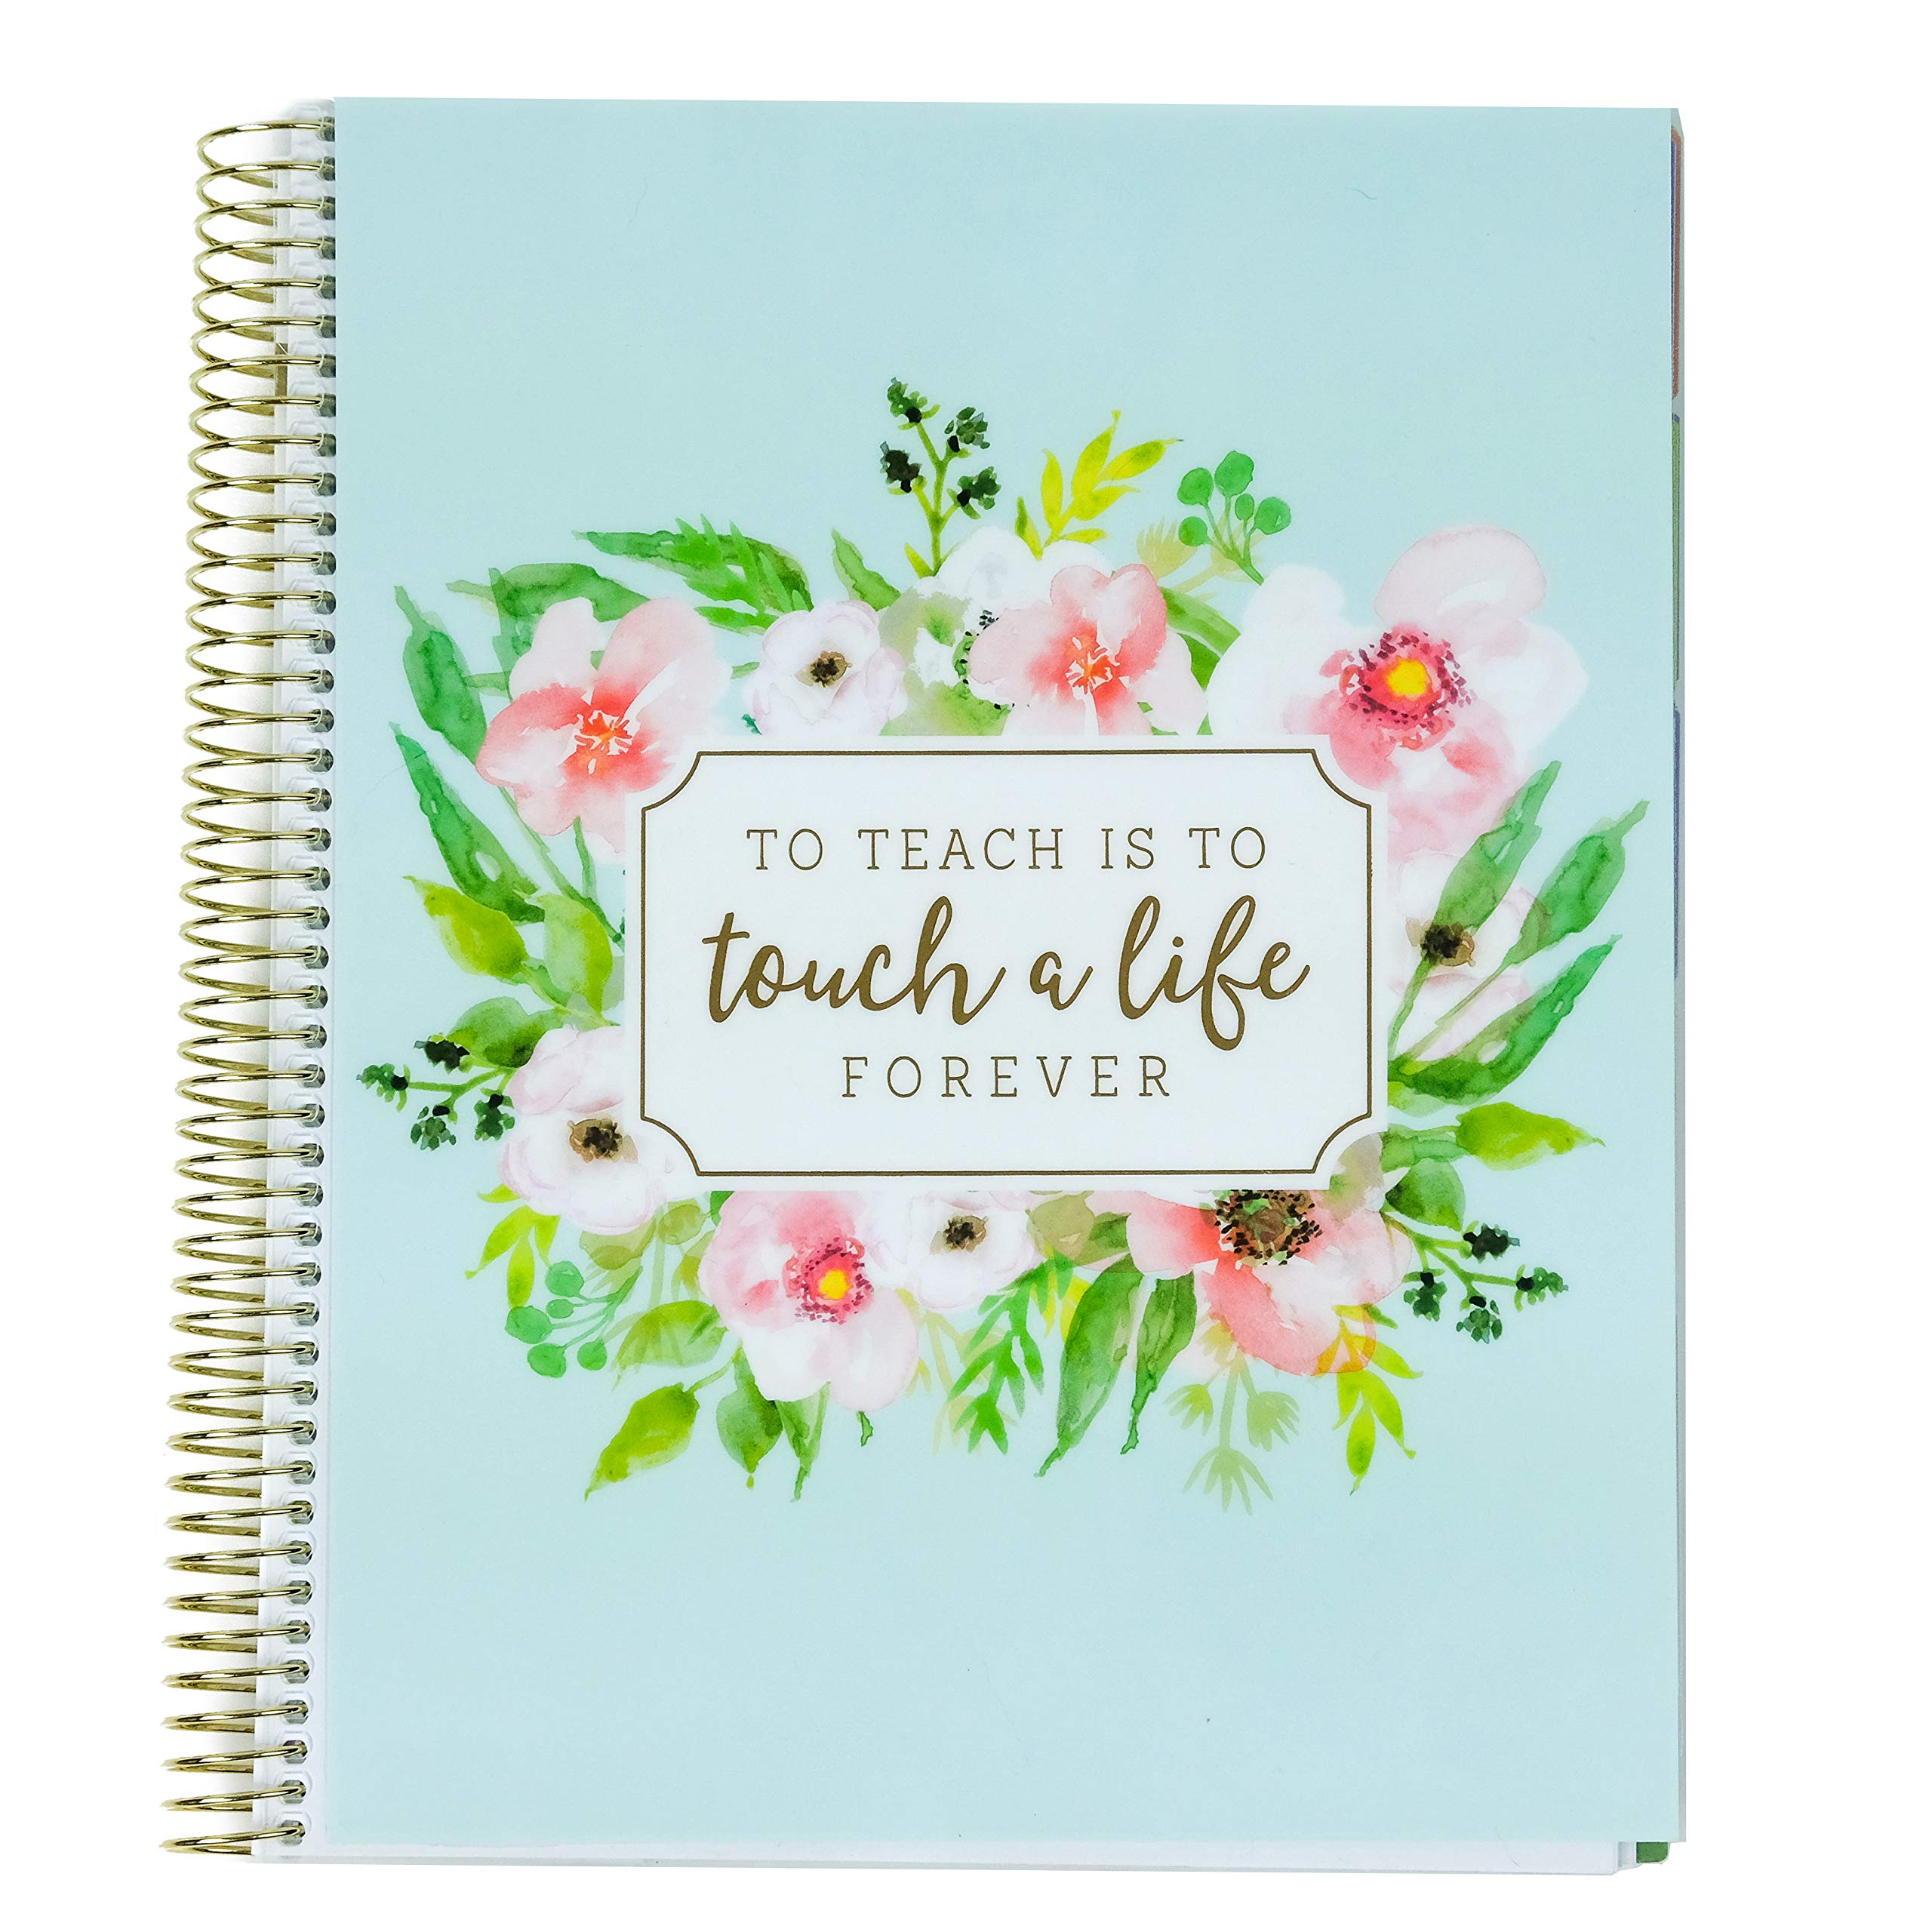 Creative Year Teacher Planner to Teach is to Such a Life Forever by Recollections UNDATED ; Weekly Planner